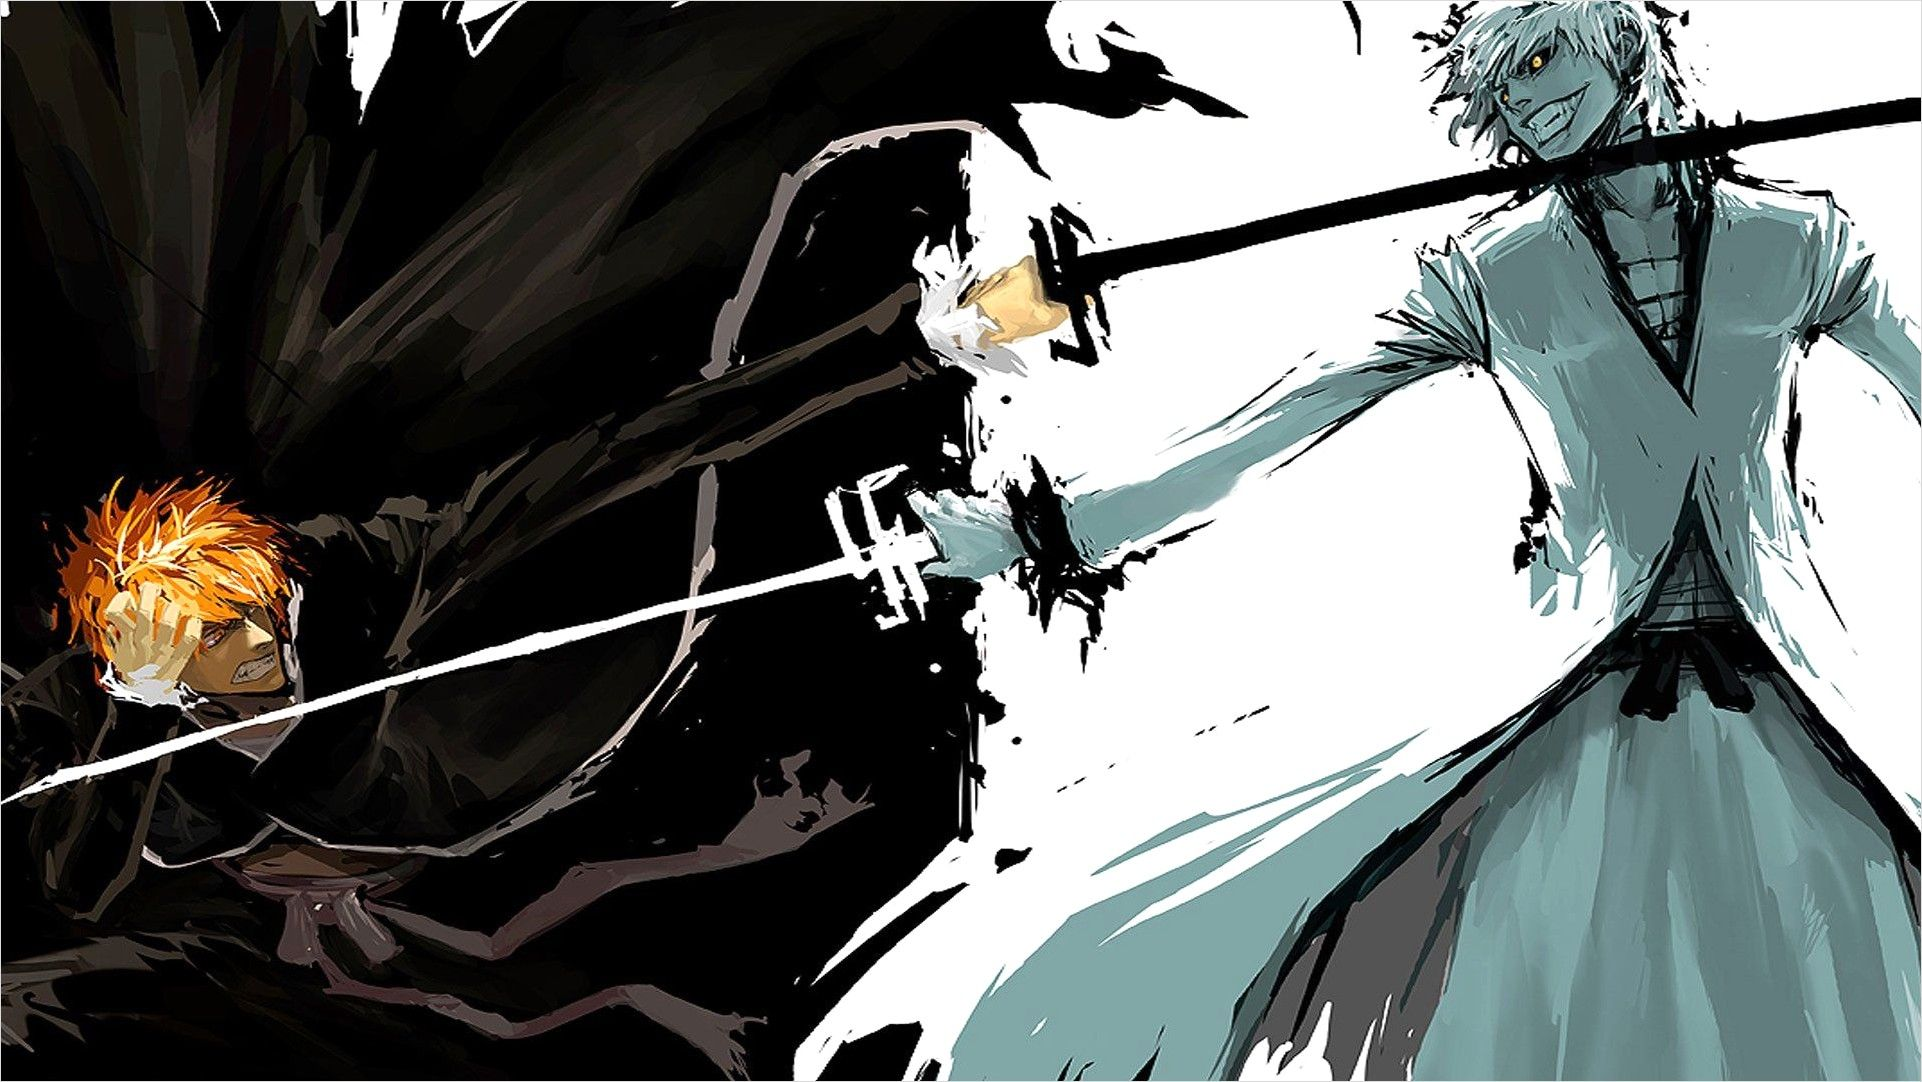 4k Bleach Wallpaper For Pc in 2020 Cool anime wallpapers